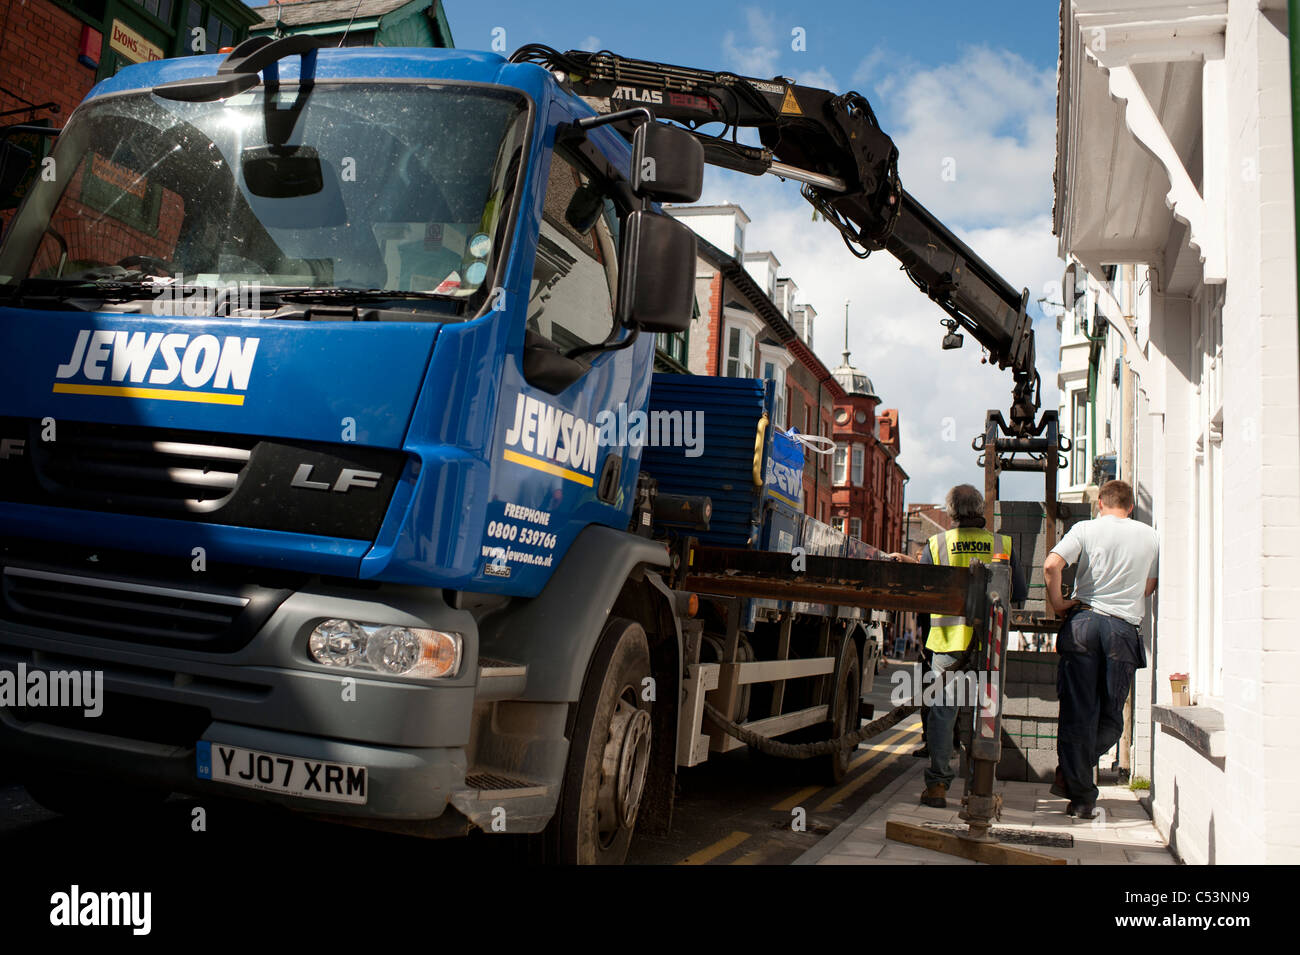 A Jewson truck delivering heavy building supplies, UK - Stock Image